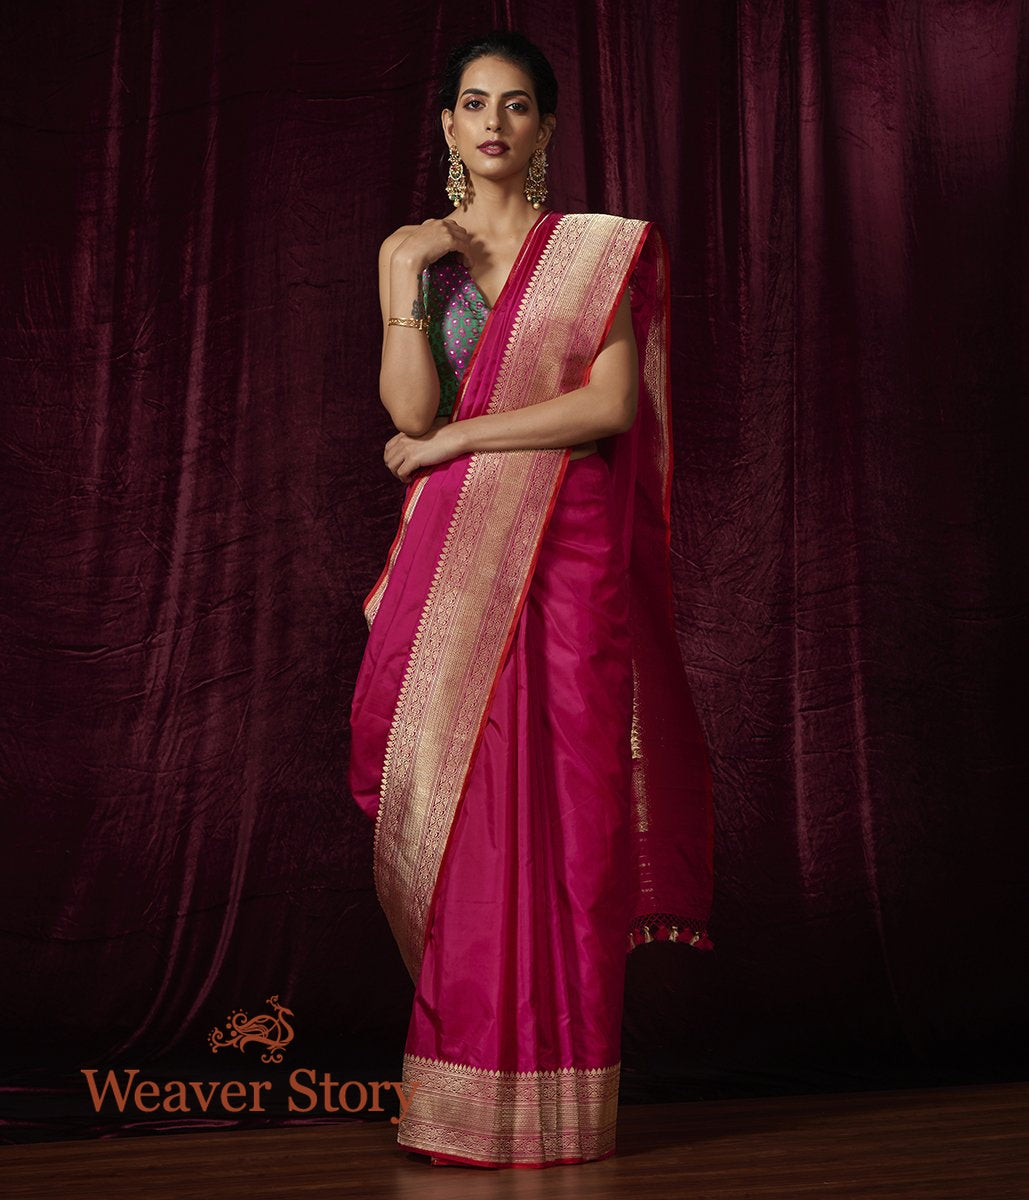 Handwoven Pink Plain Katan Saree with Heavy Border